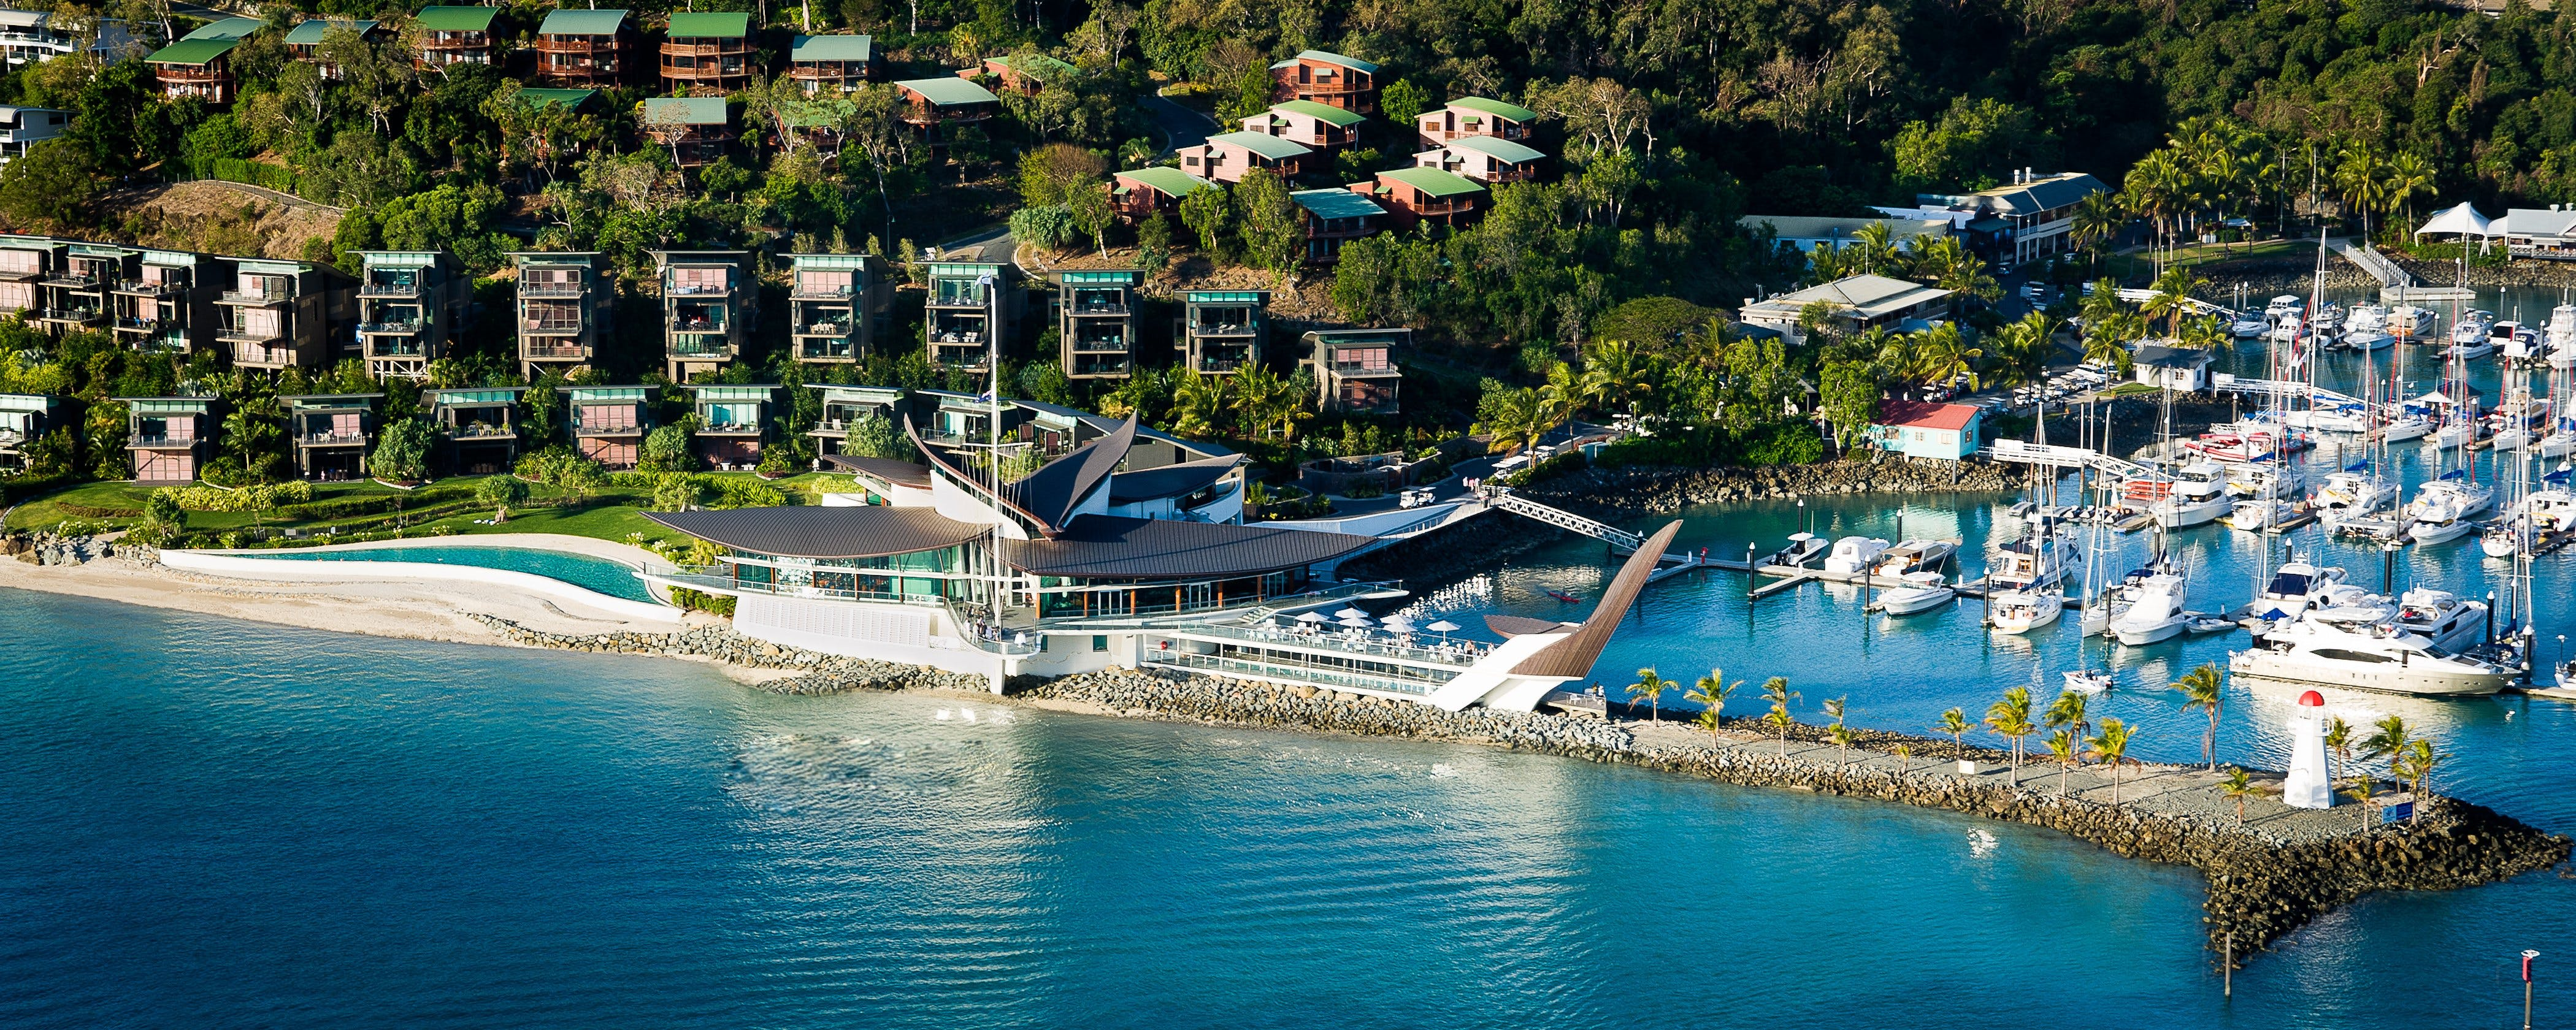 Hamilton Island Yacht Club - Attractions Sydney